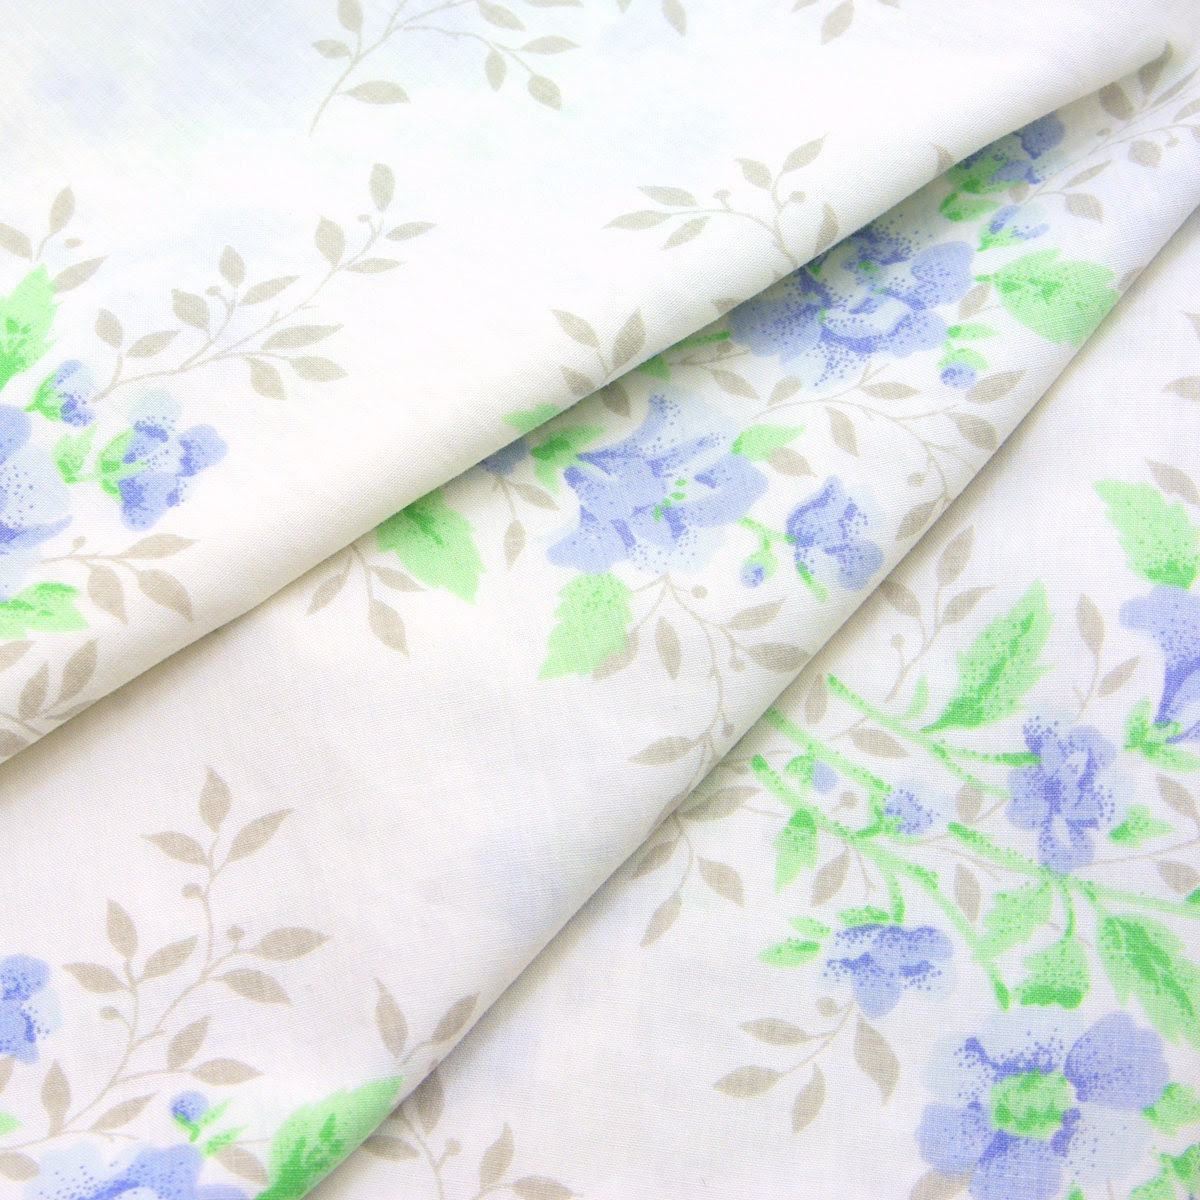 Vintage Sheet Extra Large Fat Quarter - Small Bouquets, Blue, Green, 19x26